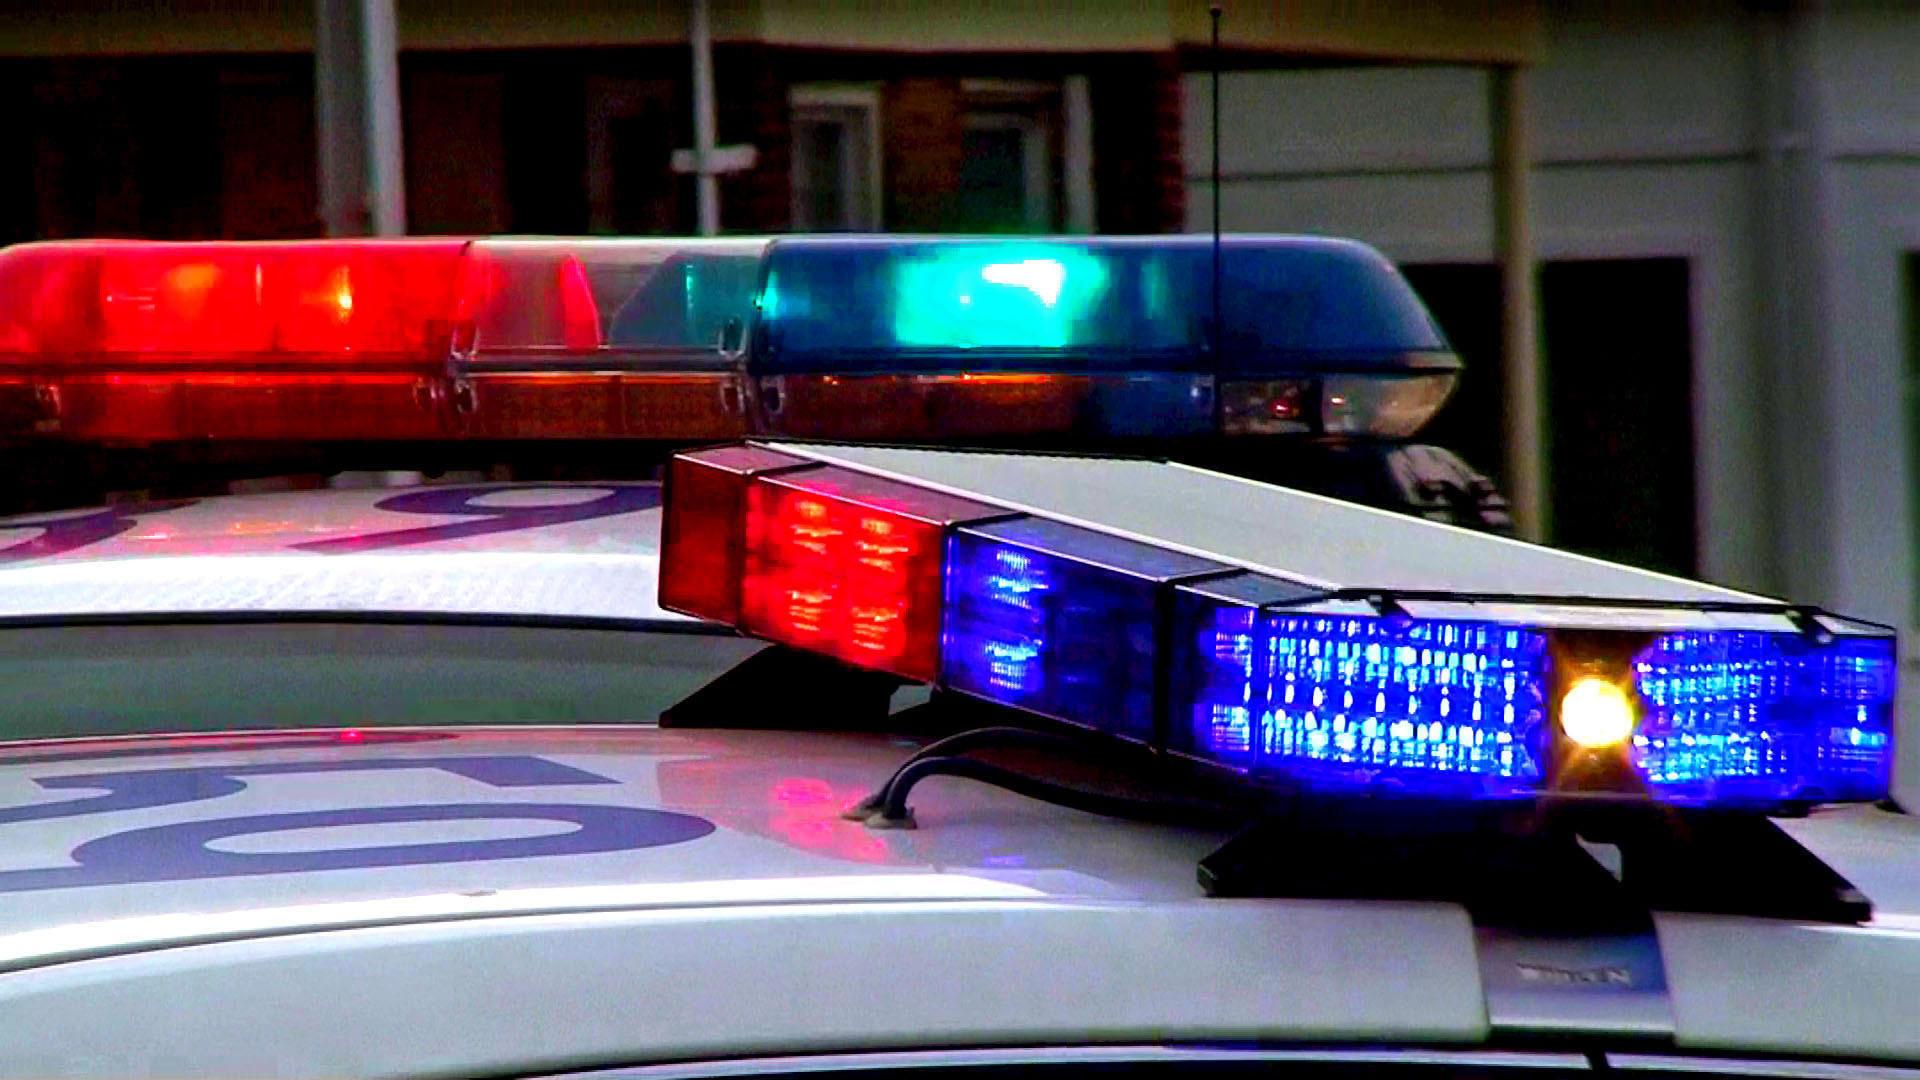 Towson-area crime: Armed robber threatened to shoot, rape woman if she didn't give up purse, police said